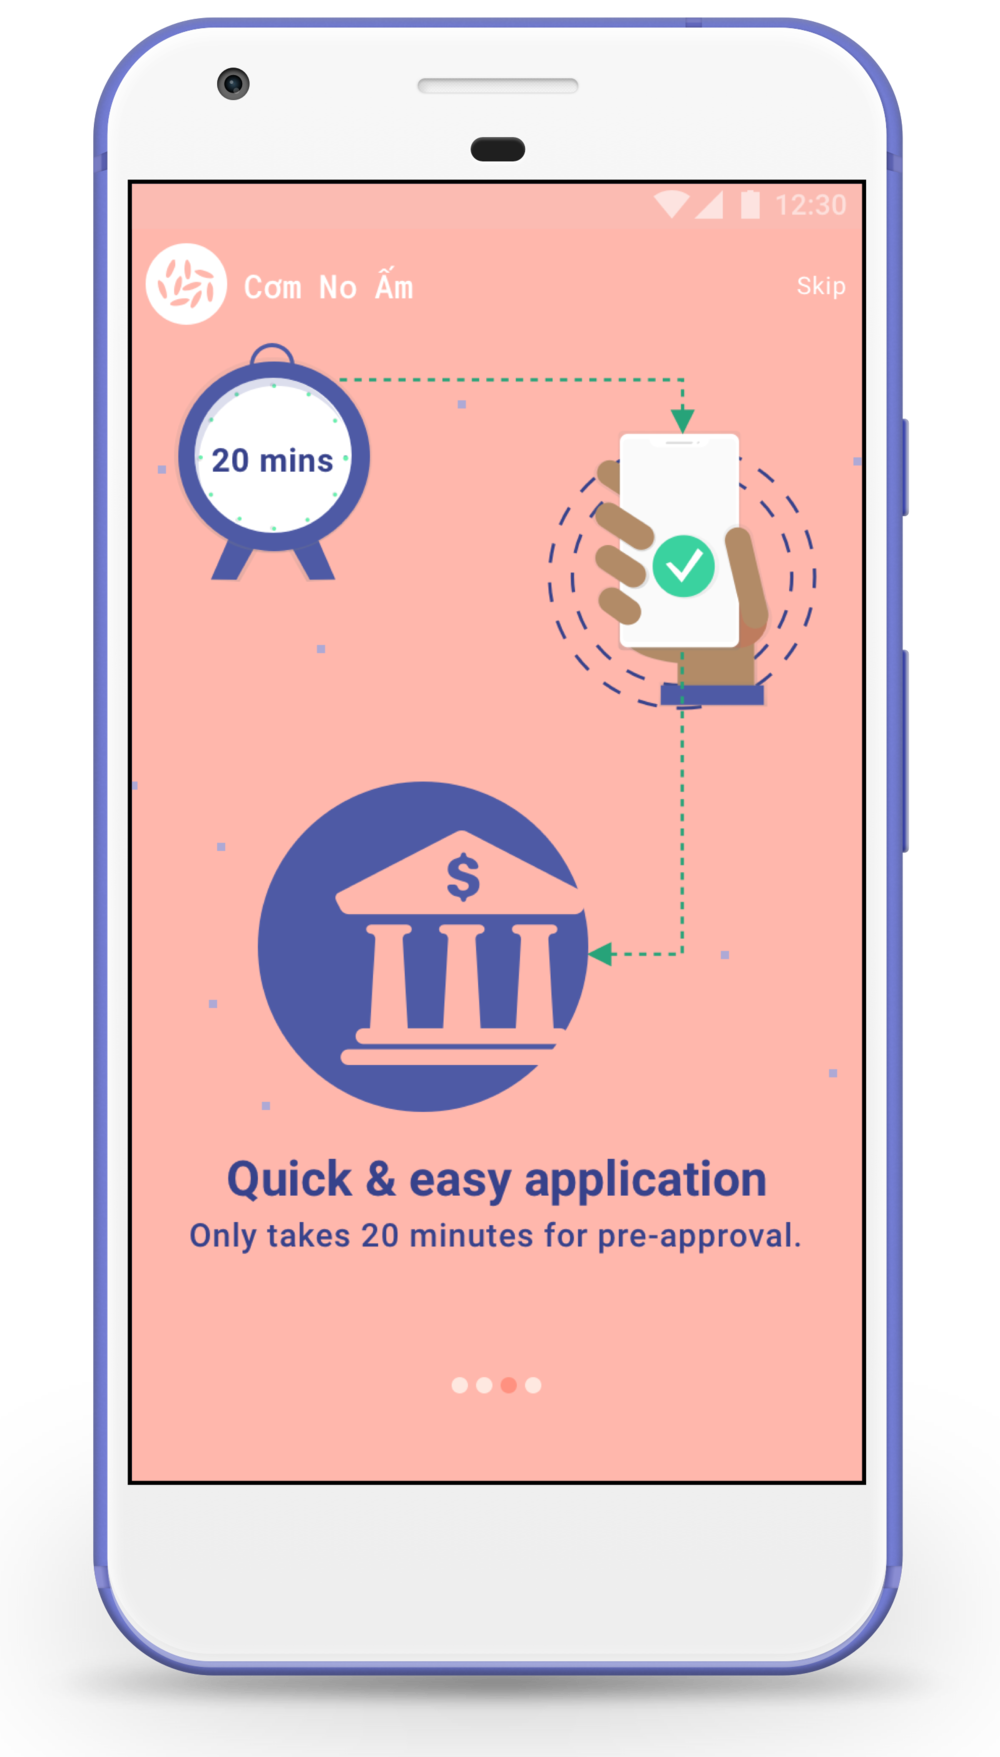 To respond to the user's time-sensitive need, it takes only 20 minutes for her to get pre-approved . She then comes to the bank with a valid ID to sign the paperwork and withdraw the cash loan.